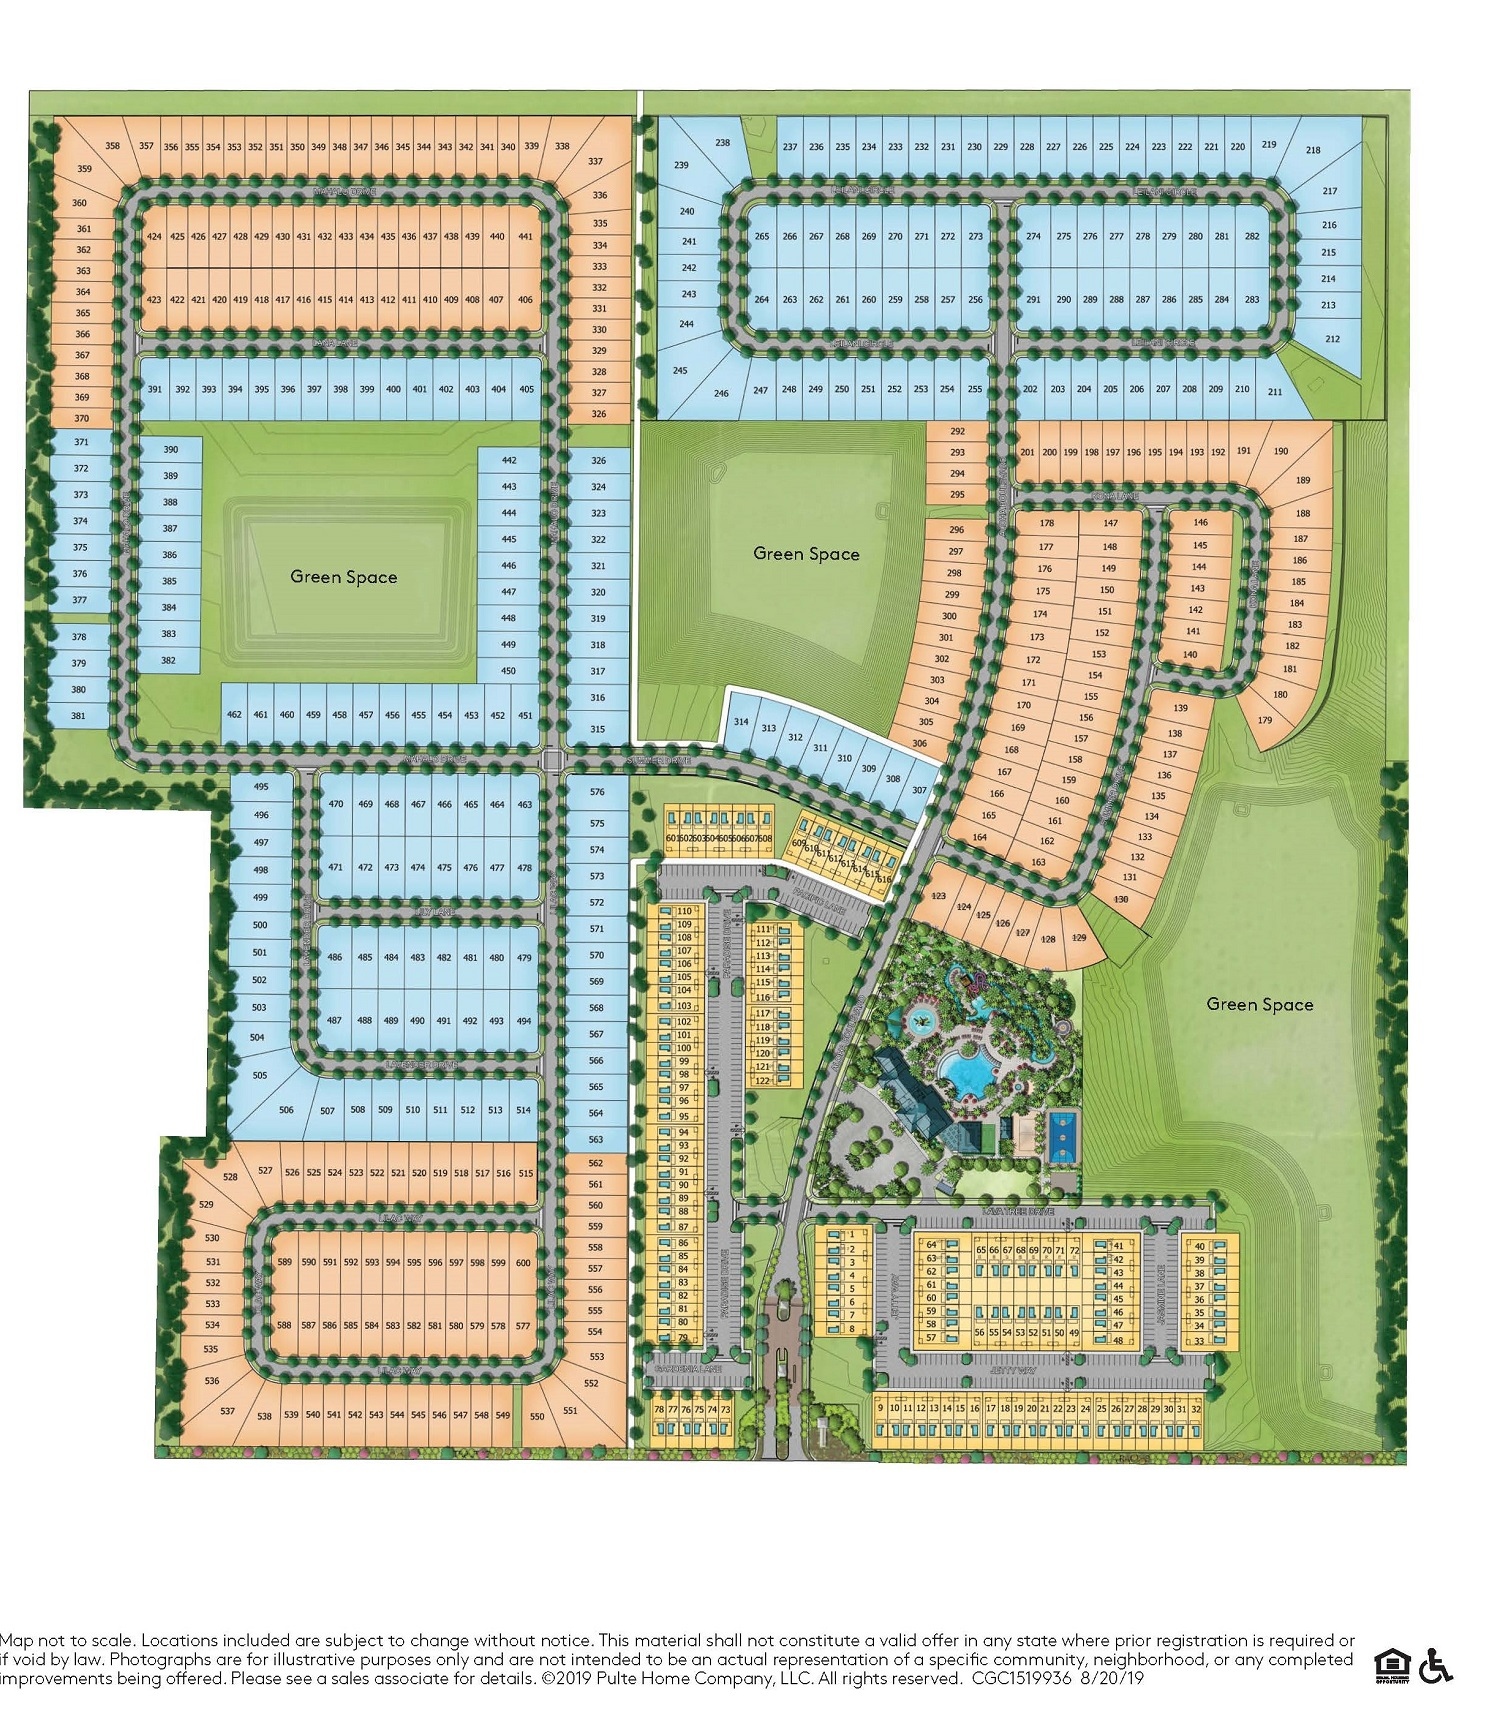 Windsor Island Resort siteplan. 600 stunning Disney vacation homes